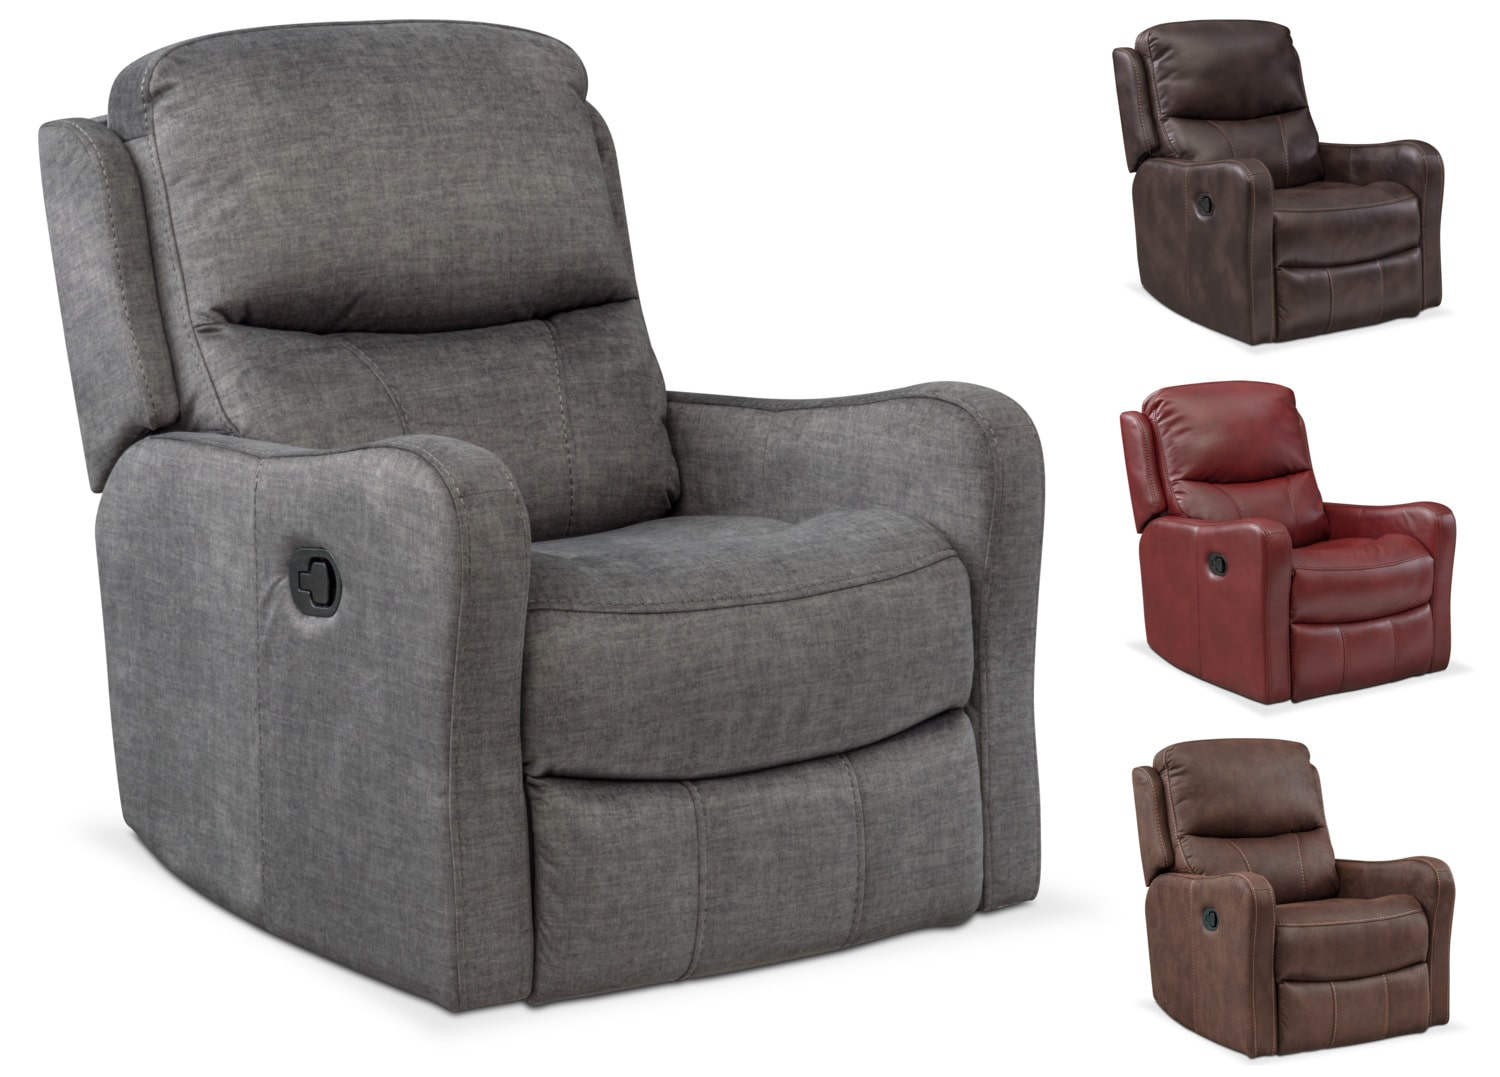 The Cabo Glider Recliner Collection